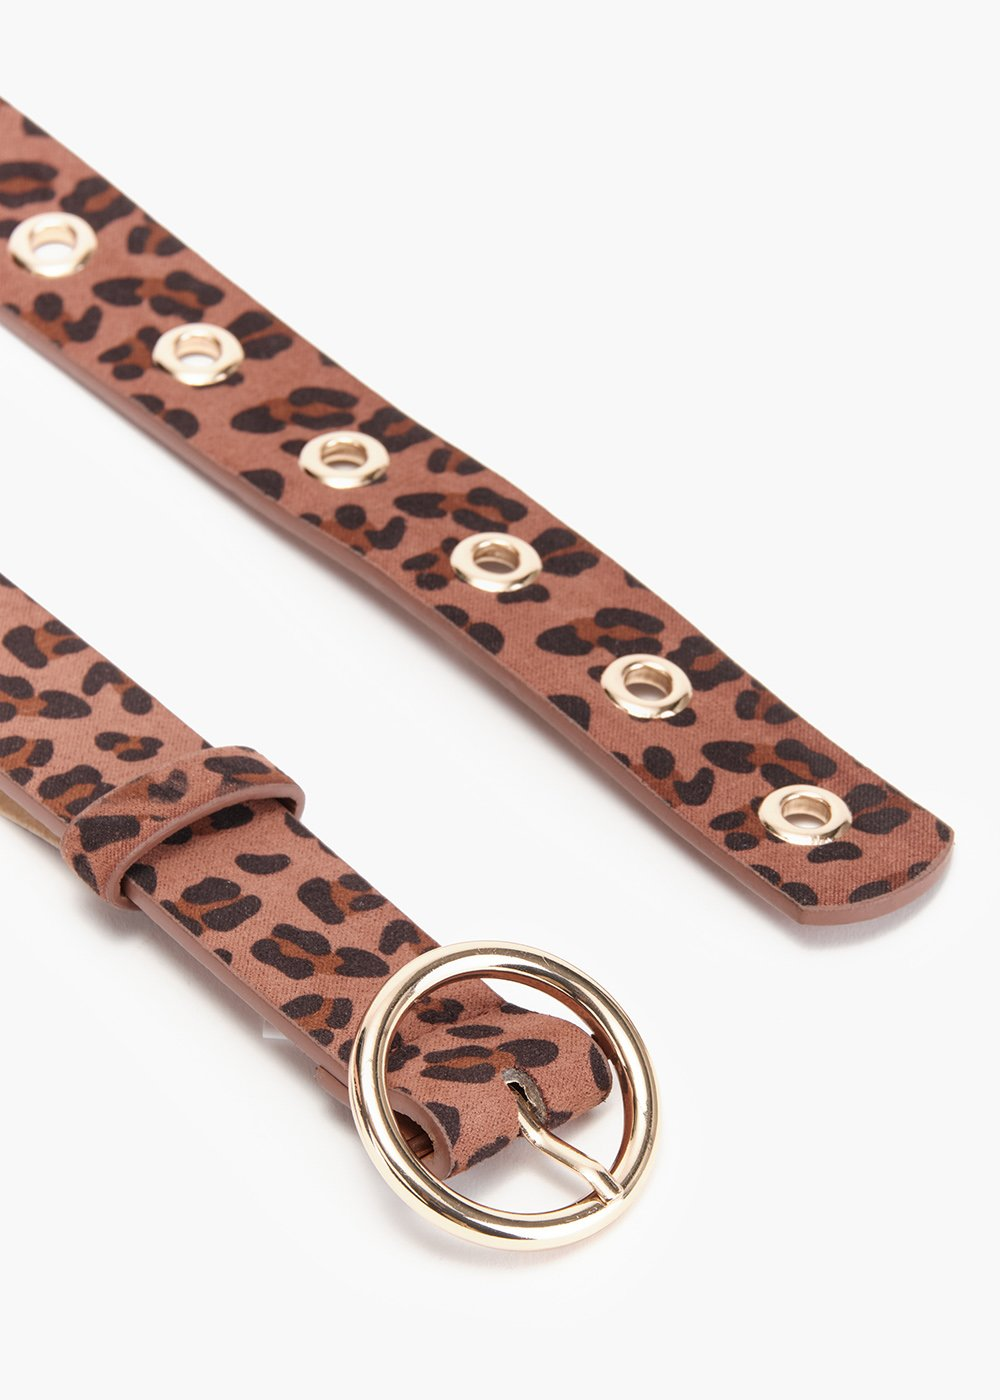 Camy animalier belt in eco suede - Sughero /  Marrone / Animalier - Woman